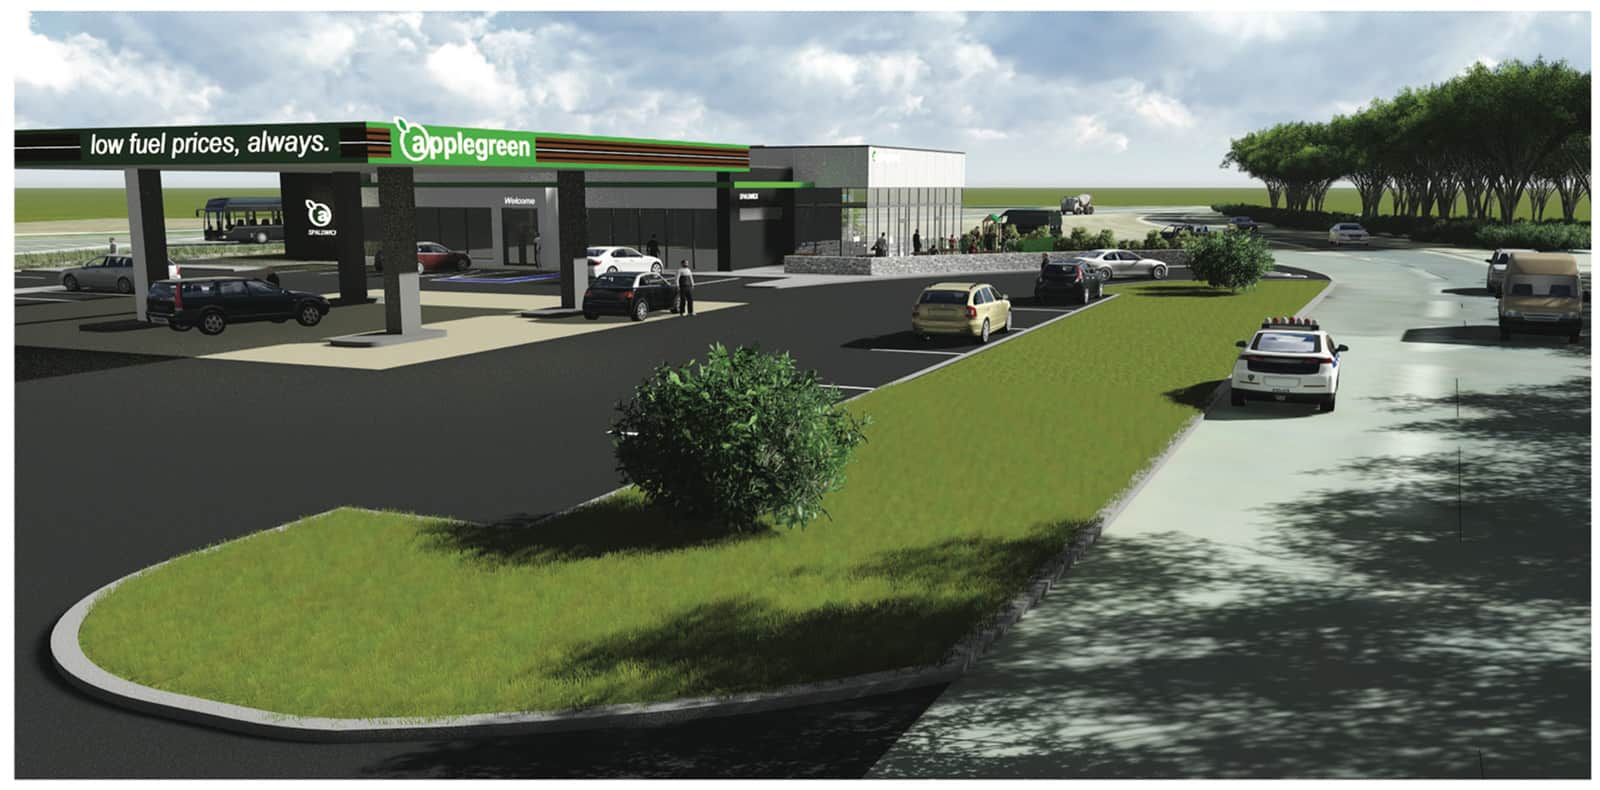 Plan for Spaldwick service station